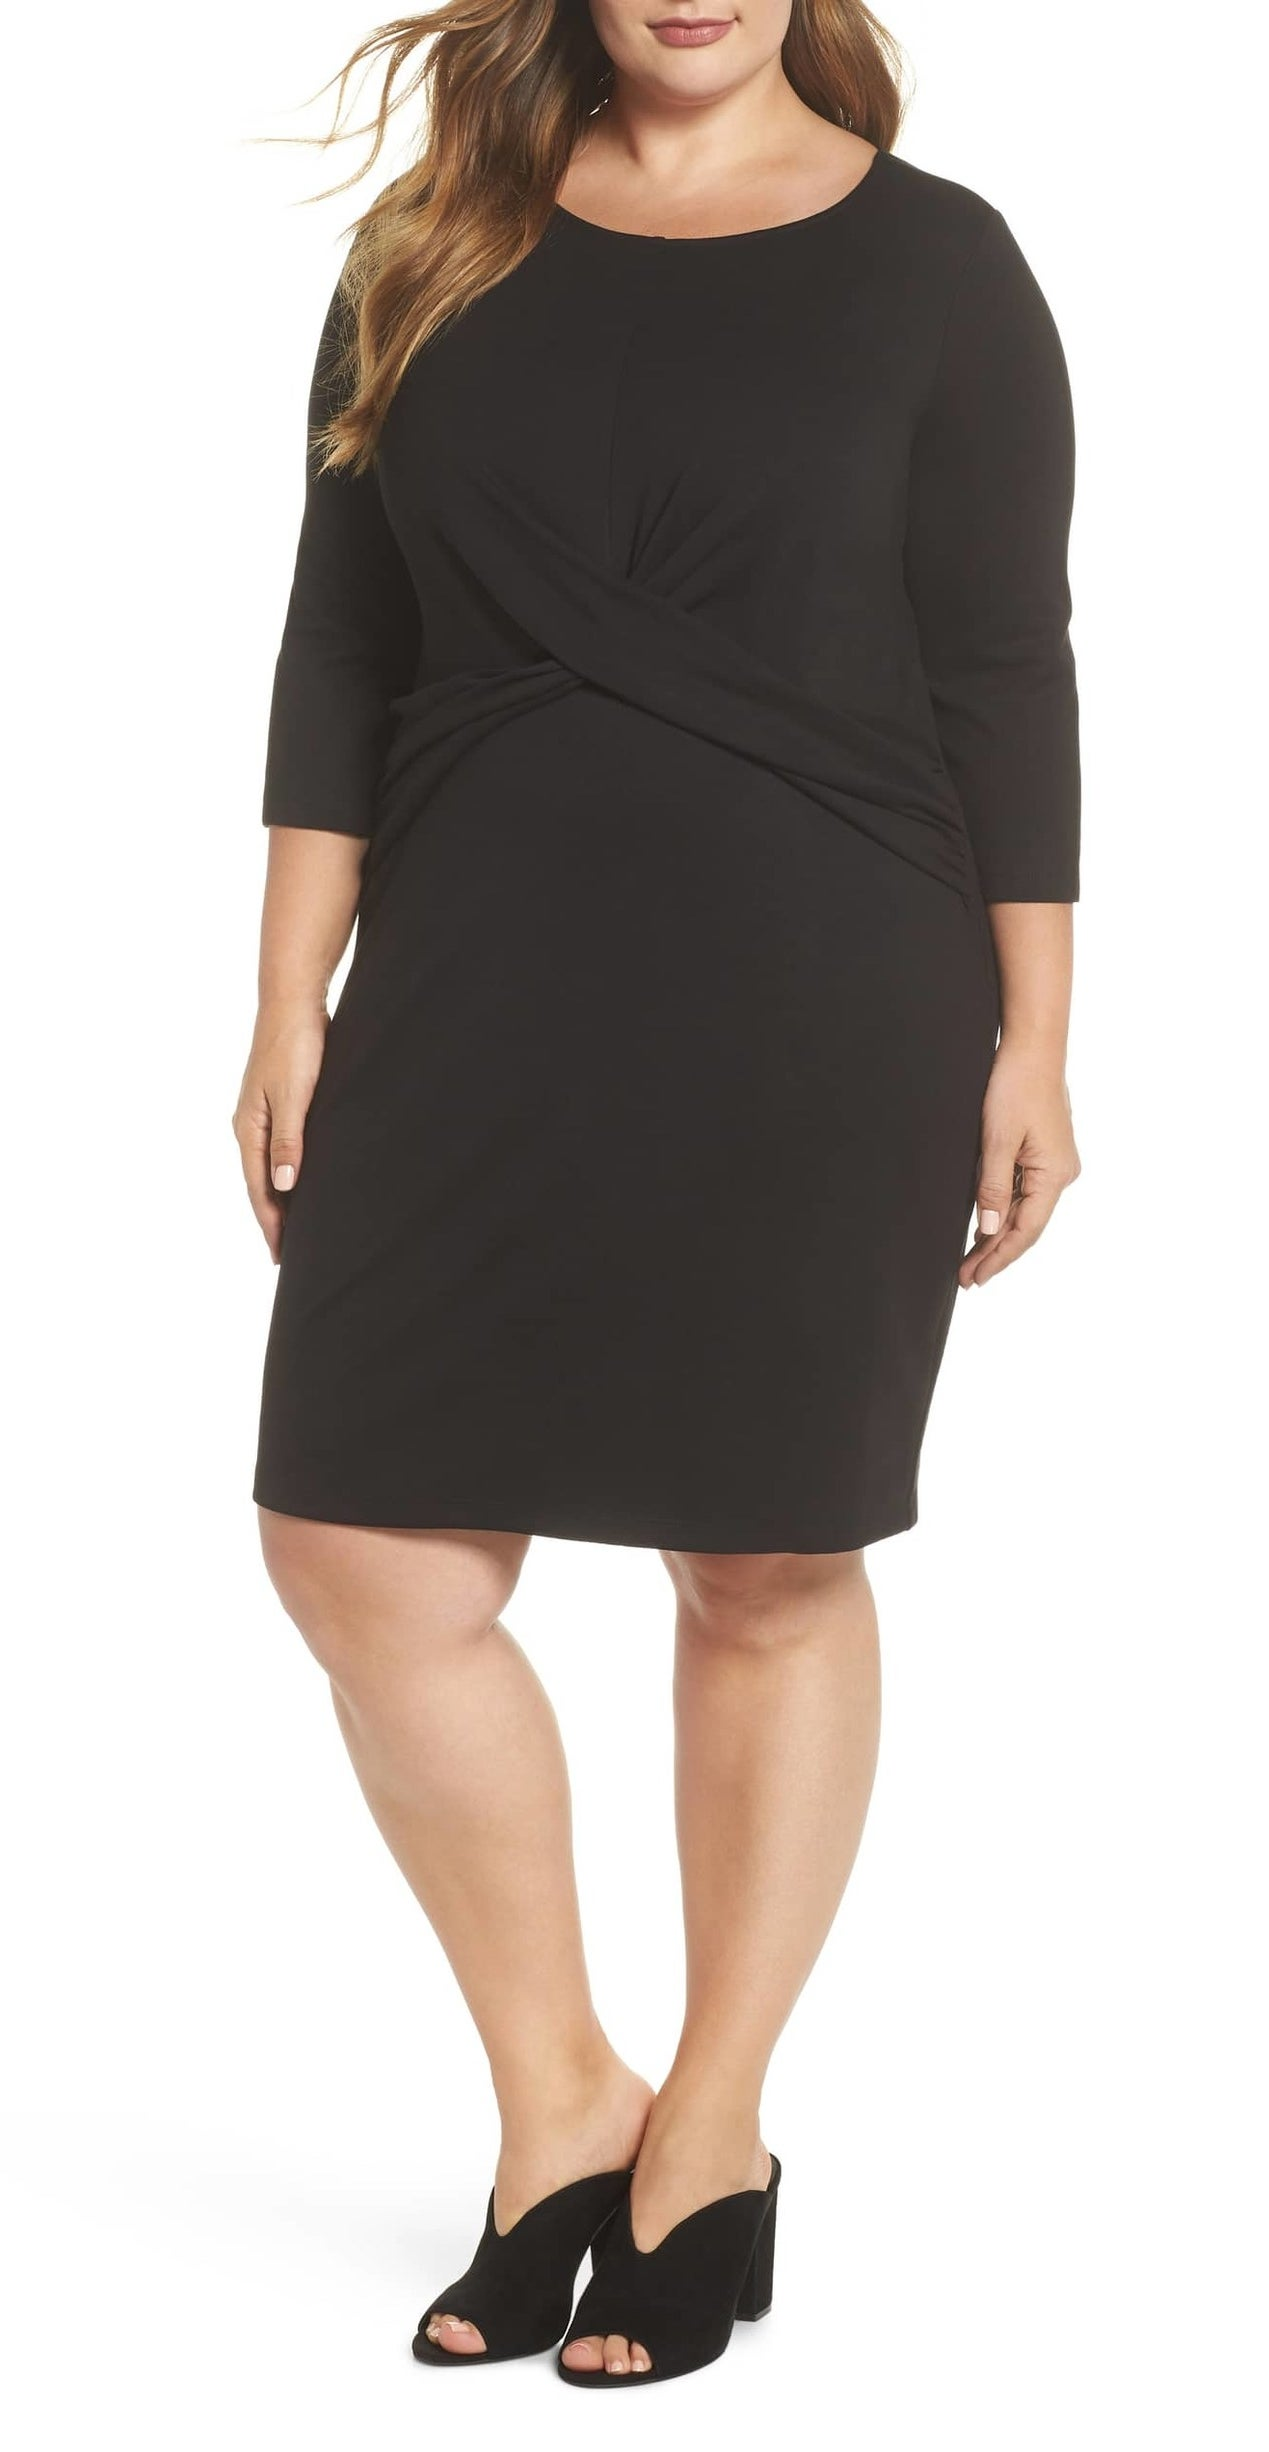 Price: $44.98 (originally $75, available in sizes 1X-3X and in two colors)